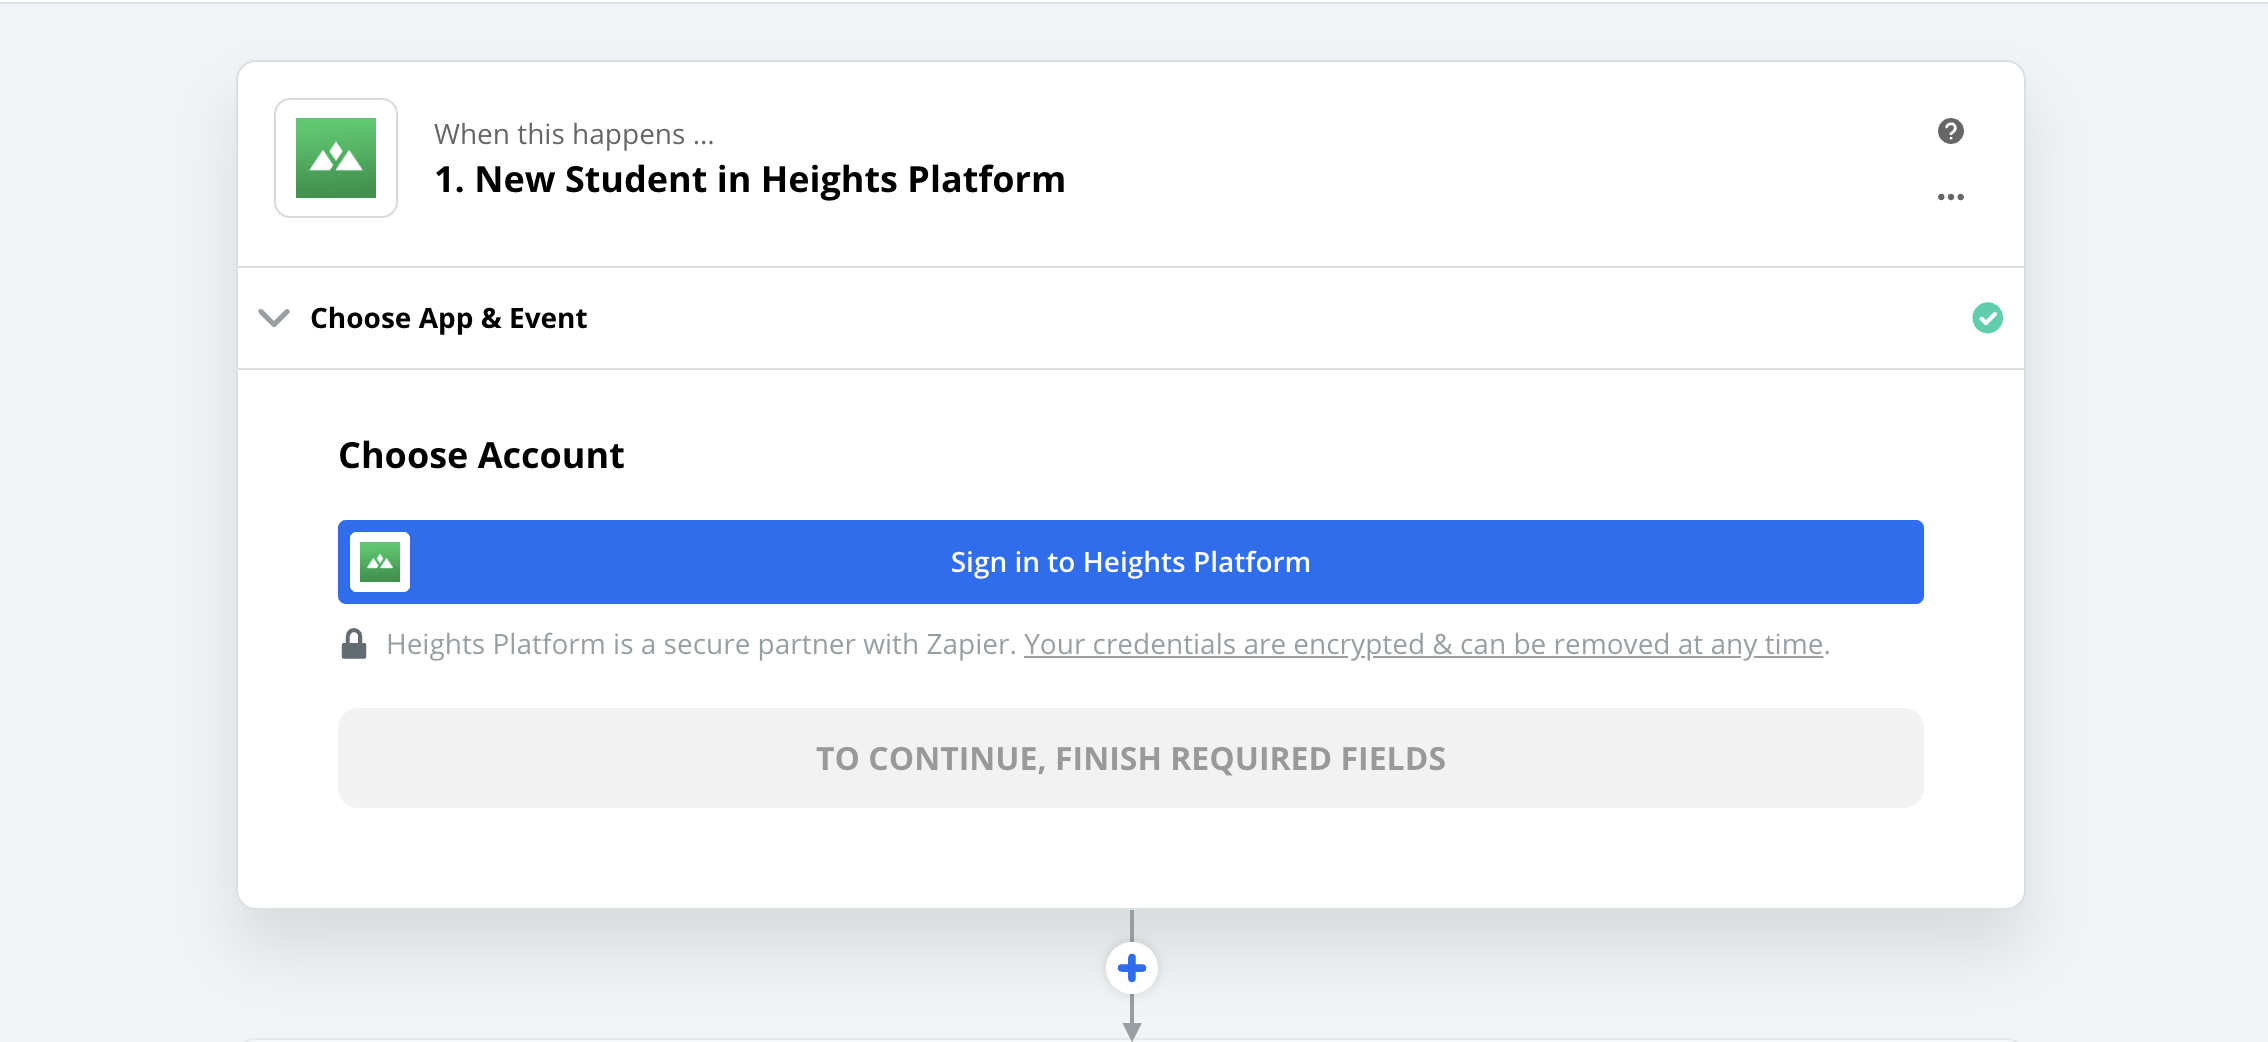 Click to connect Heights Platform